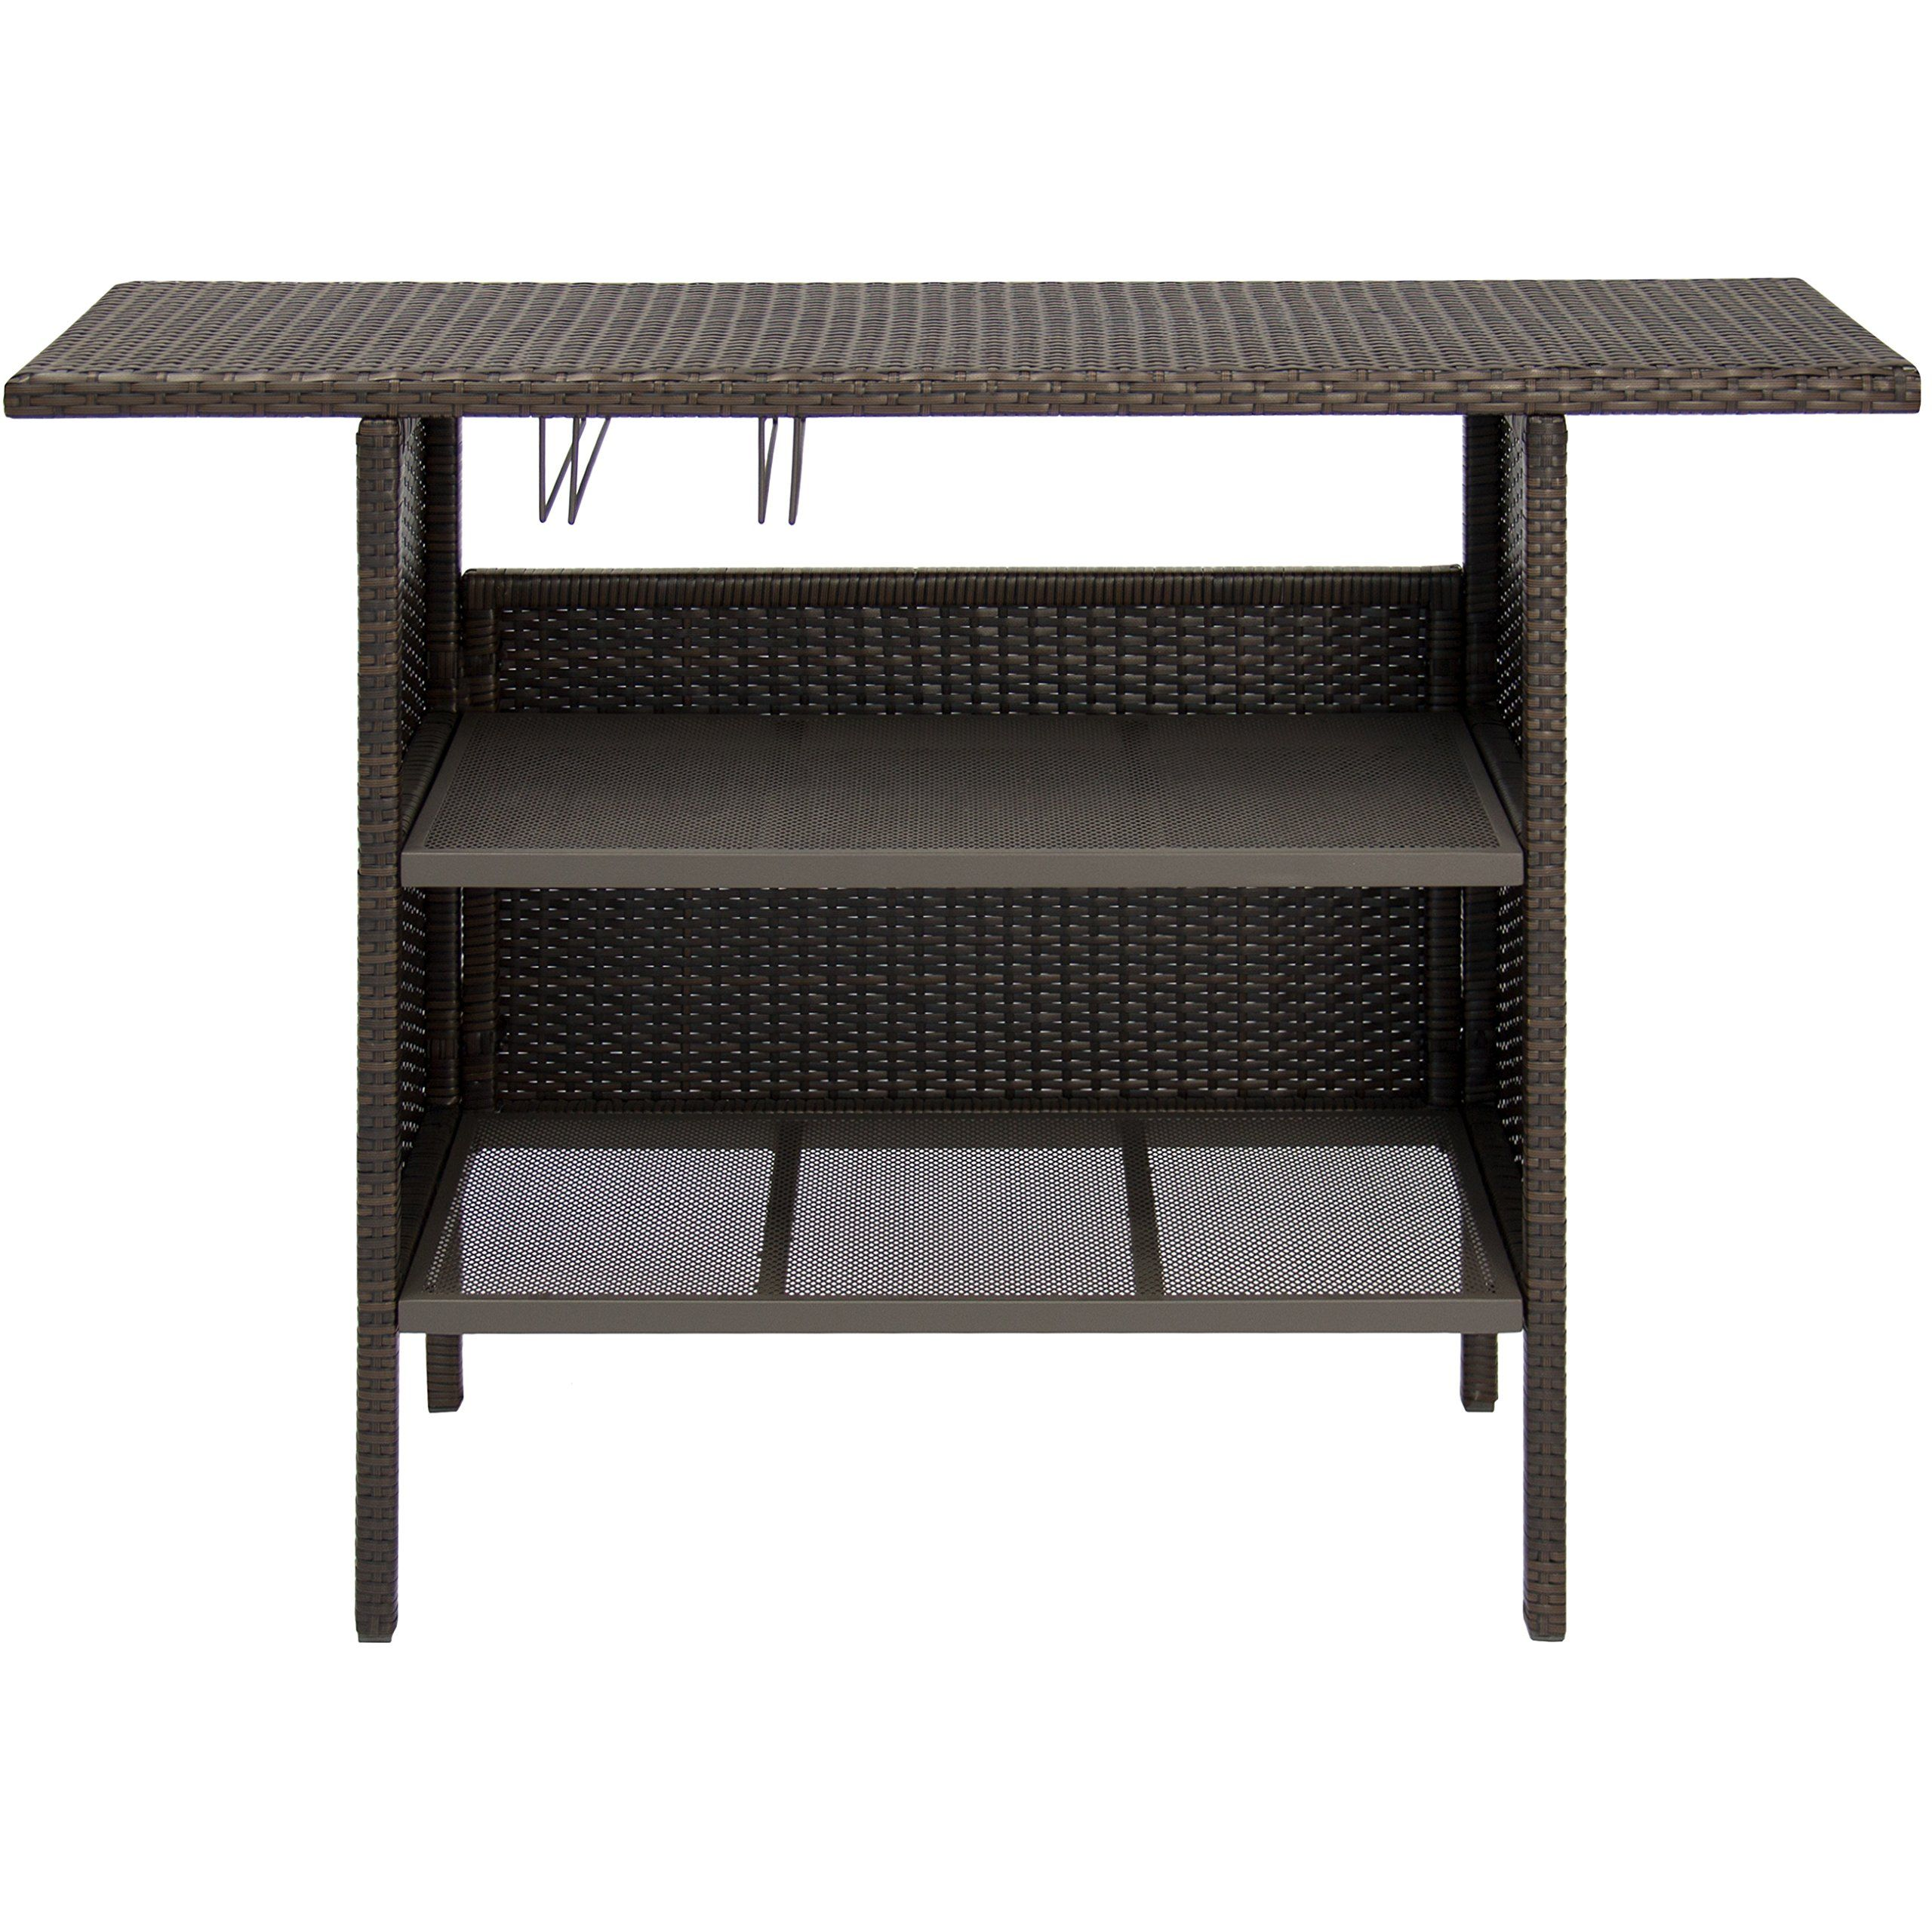 Best Choice Products Outdoor Patio Wicker Bar Counter Table W/2 Steel  Shelves 2 Sets Of Rails Brown * More Info Could Be Found At The Image Url.